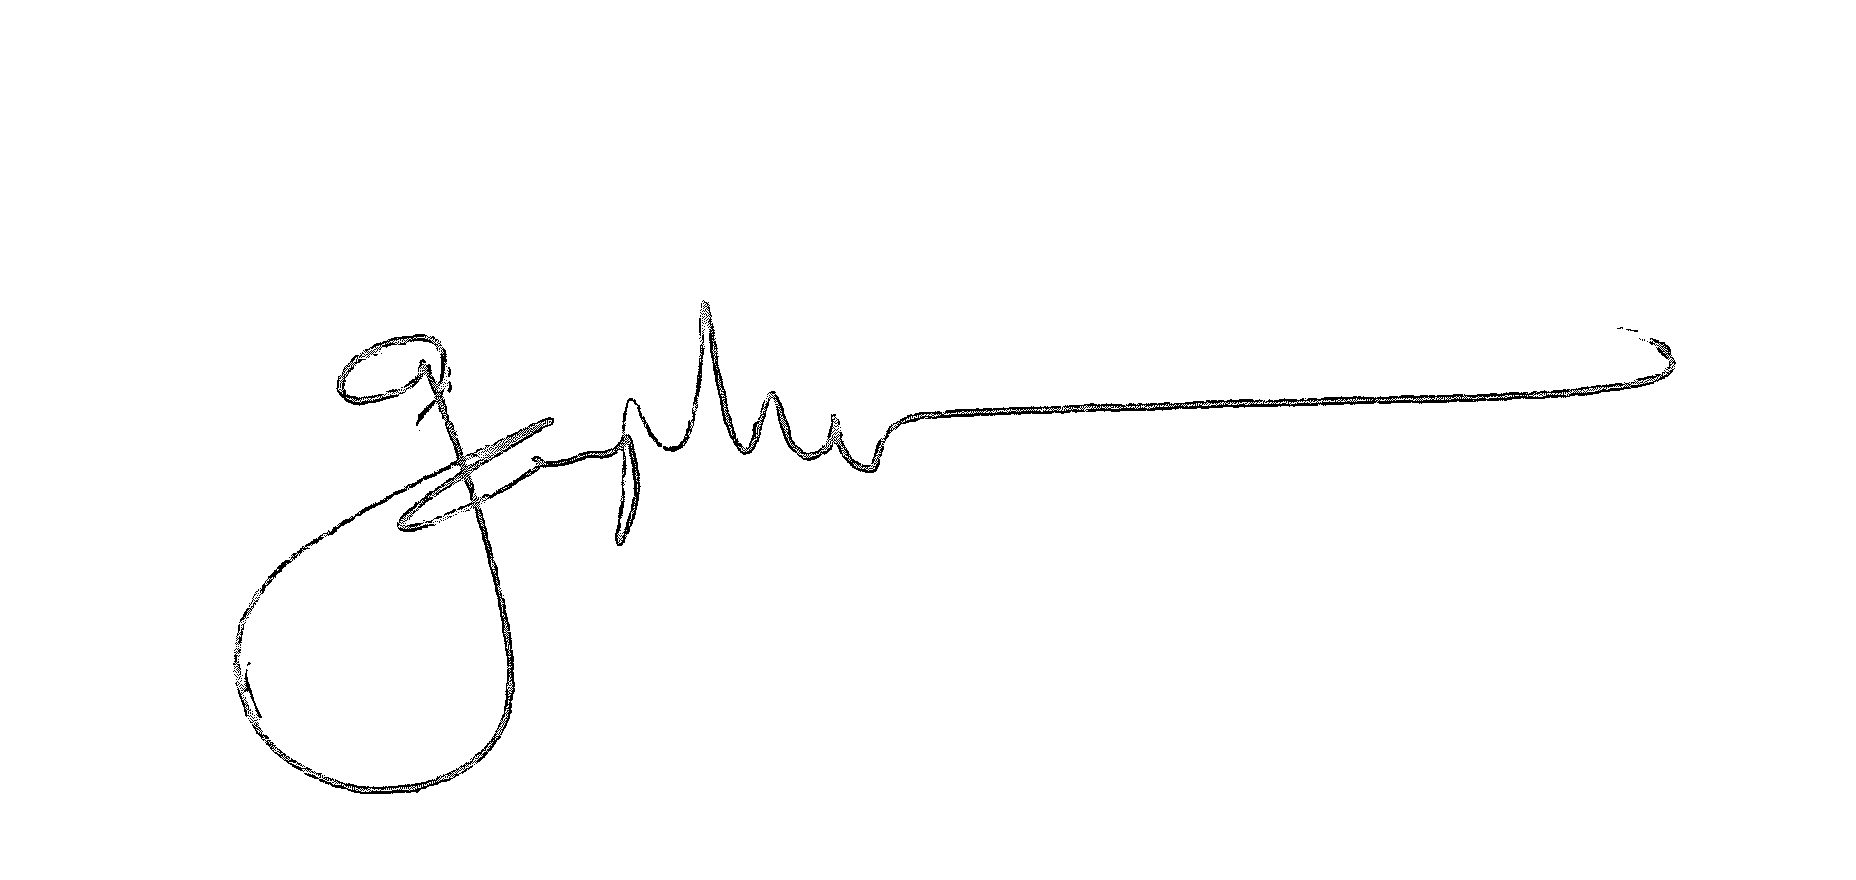 Joseph deGraft-Johnson Signature